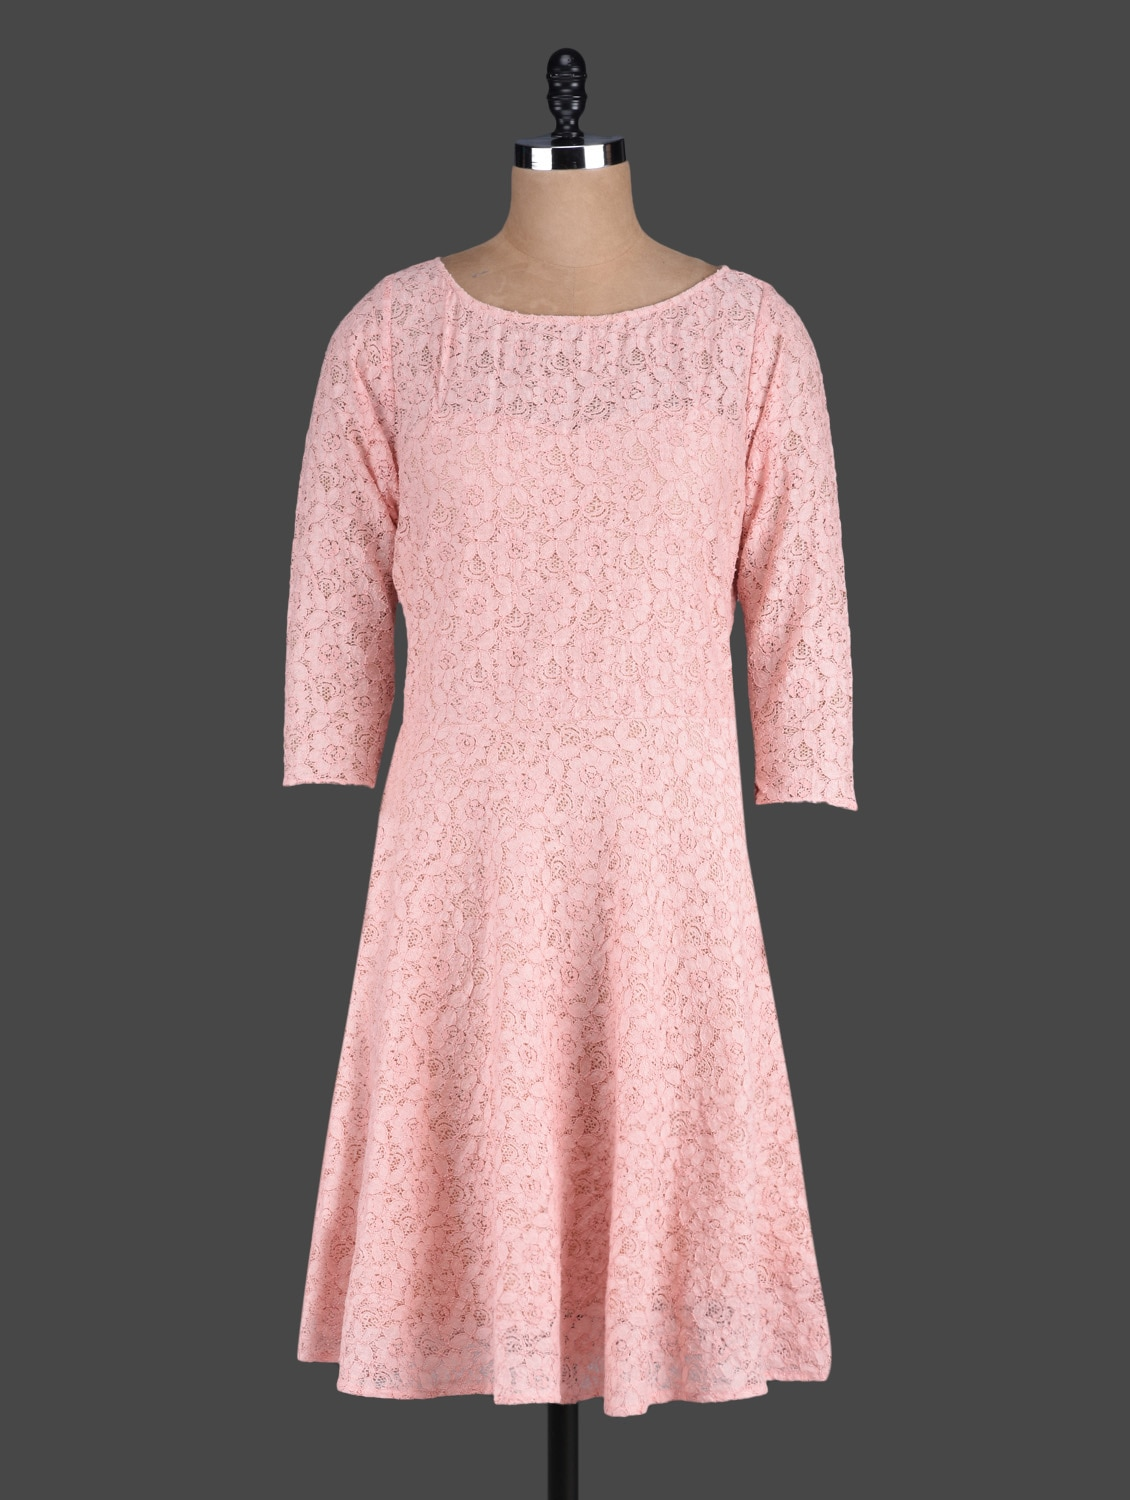 Peach Fit And Flare Lace Dress - Eavan